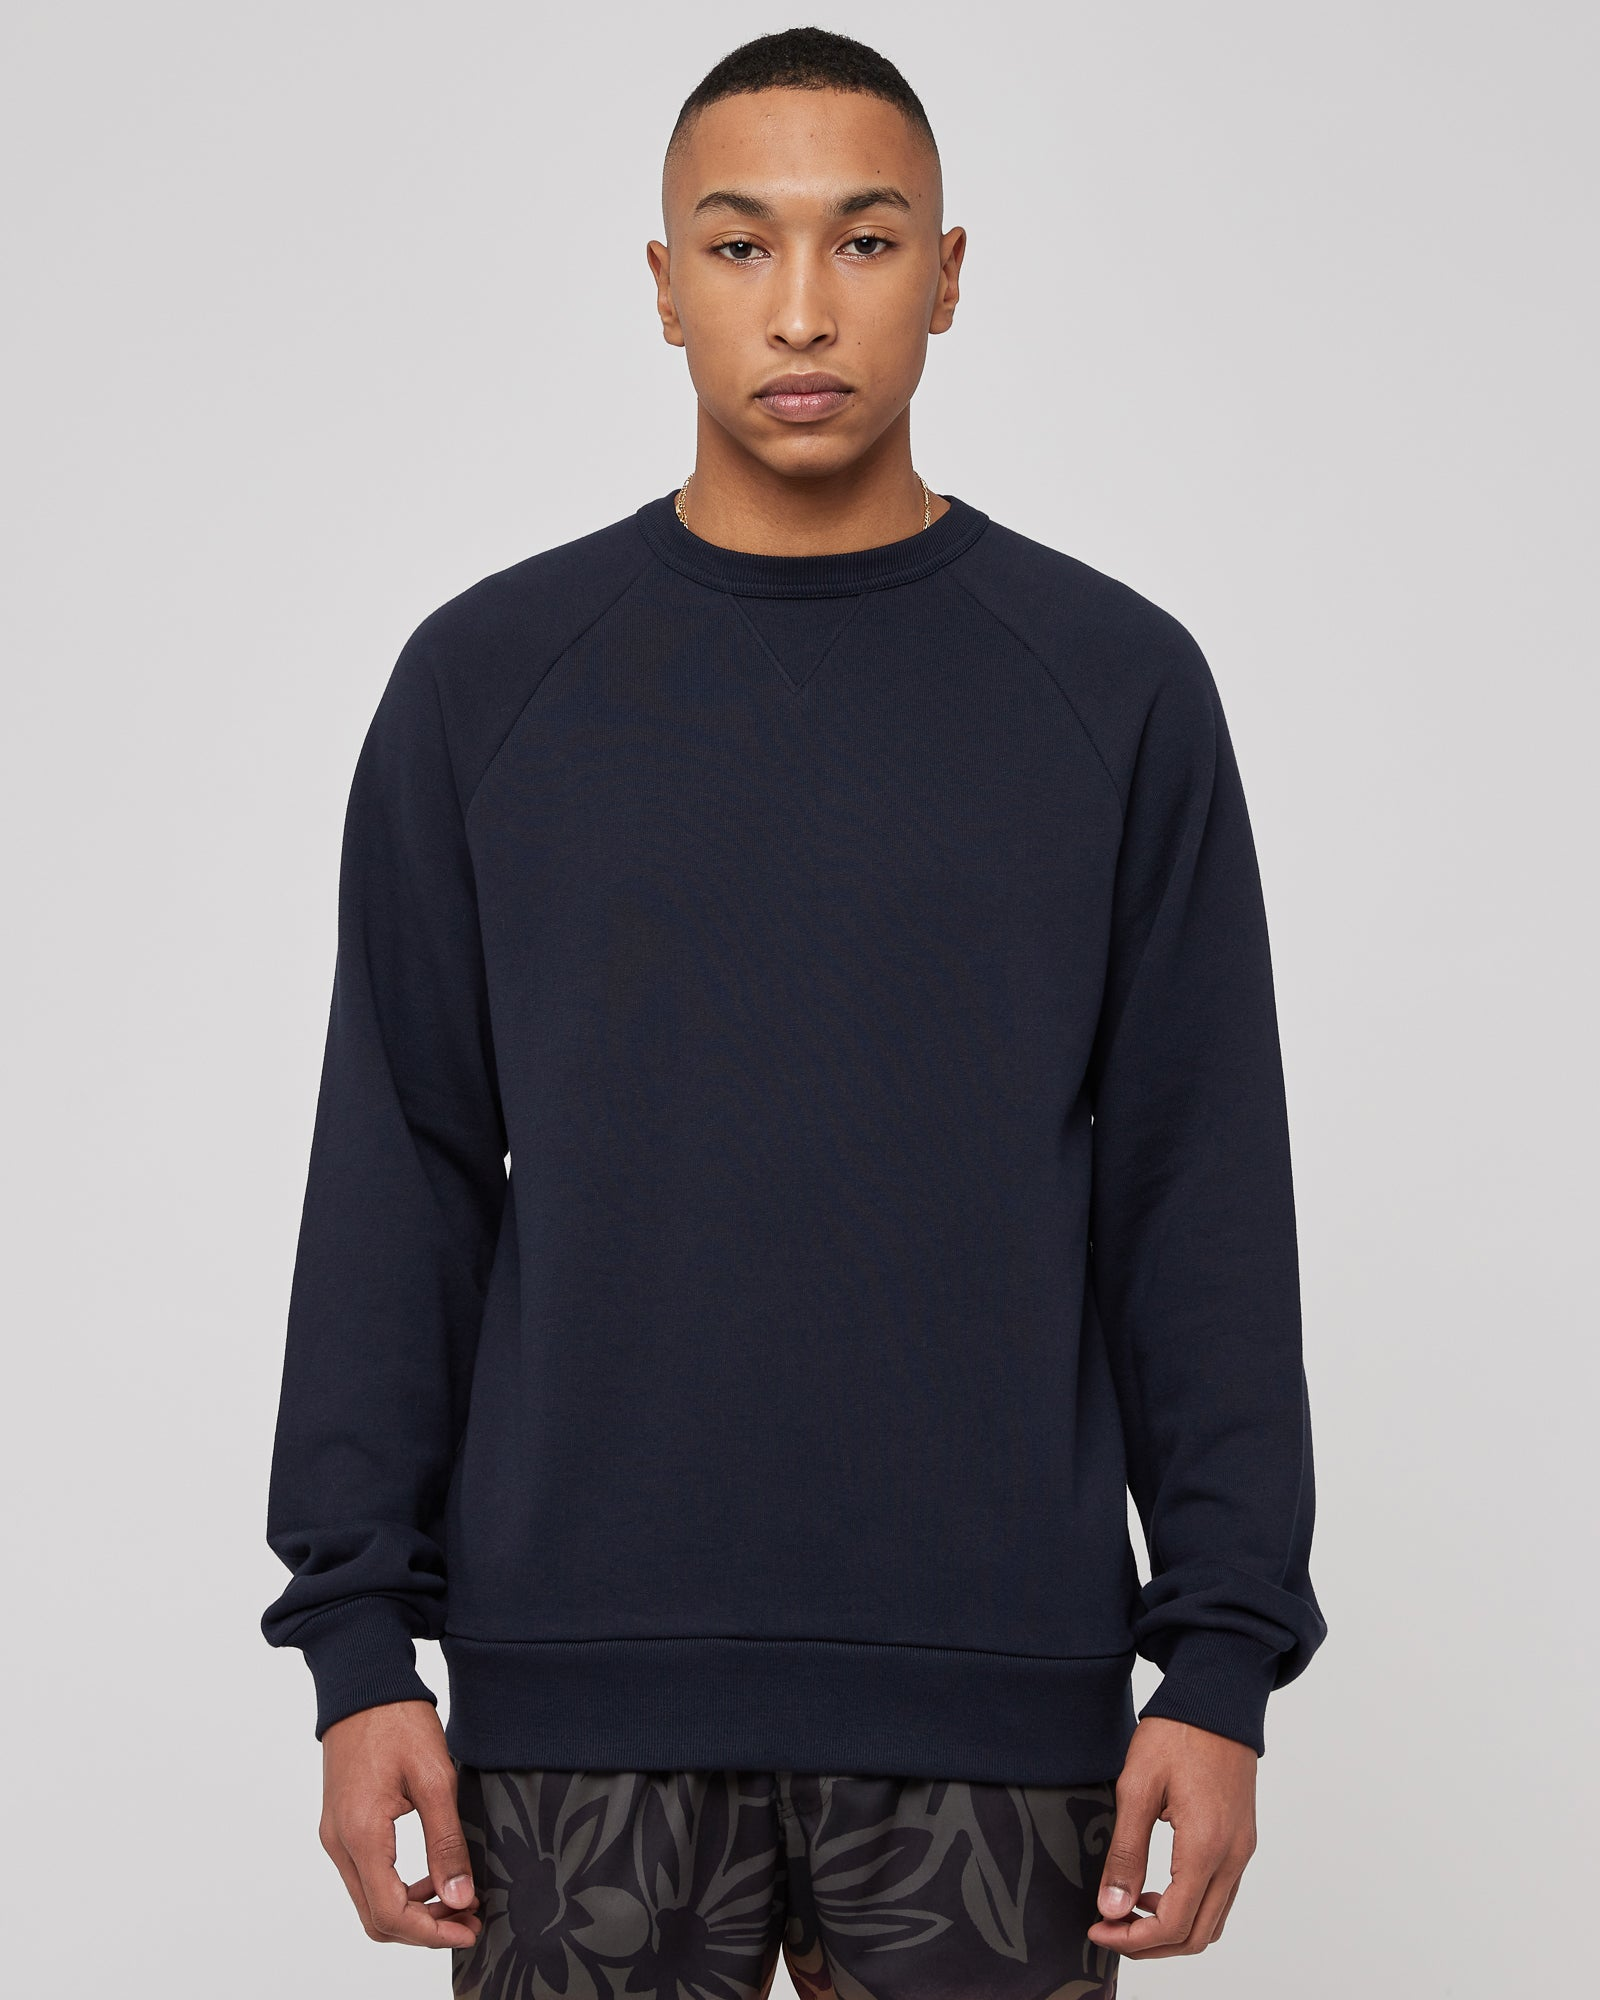 Hosko Sweater in Navy